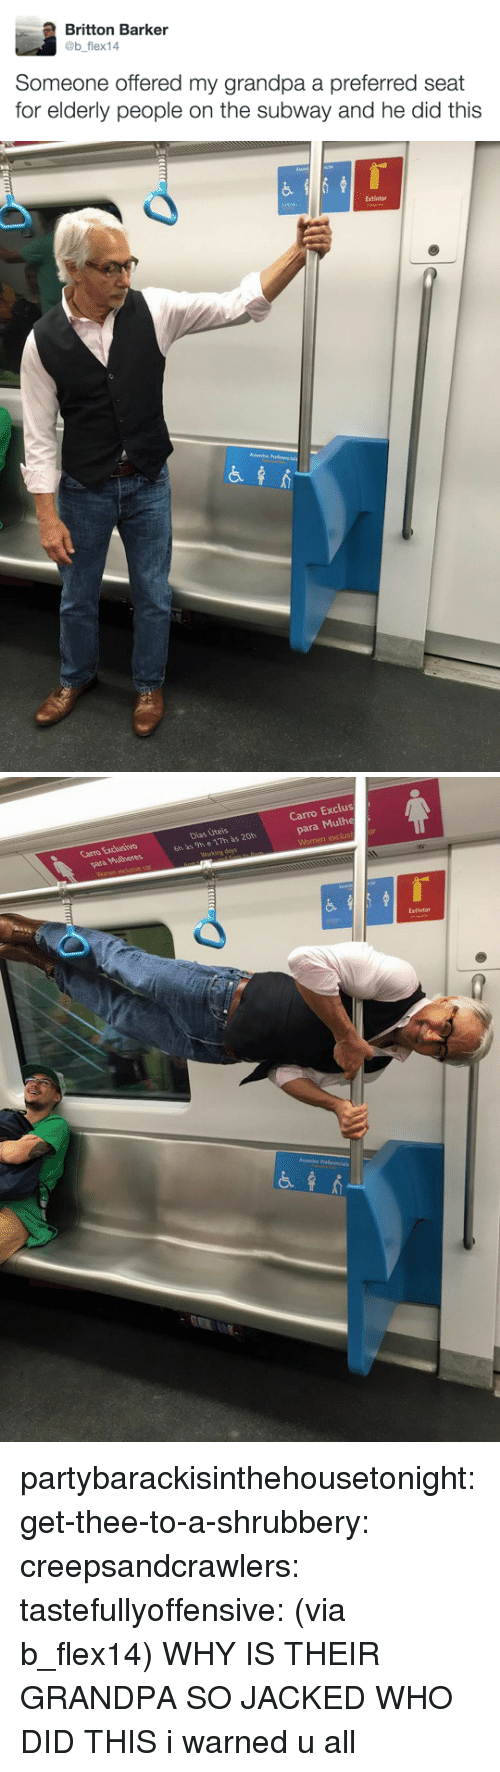 Bilbo, Subway, and Target: Britton Barker  @b flex14  Someone offered my grandpa a preferred seat  for elderly people on the subway and he did this   Extintor   Carro Exclus  para Mulhe  Carro Excusivo  Dias Úteis  6h às 9h e 17h às 20h  Extintor partybarackisinthehousetonight: get-thee-to-a-shrubbery:  creepsandcrawlers:  tastefullyoffensive:  (via b_flex14)  WHY IS THEIR GRANDPA SO JACKED WHO DID THIS    i warned u all